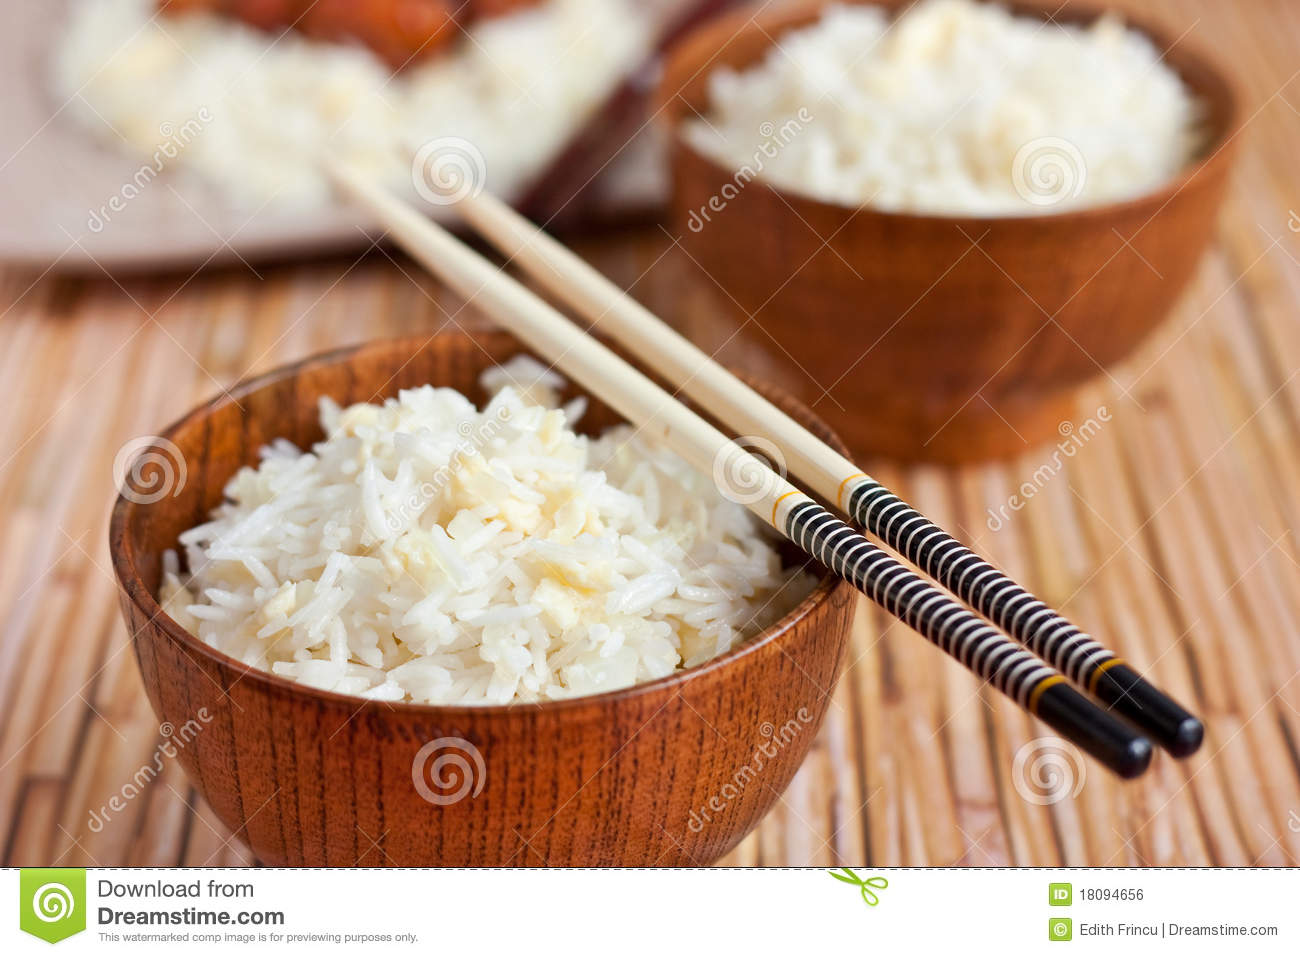 how to use chopsticks with rice